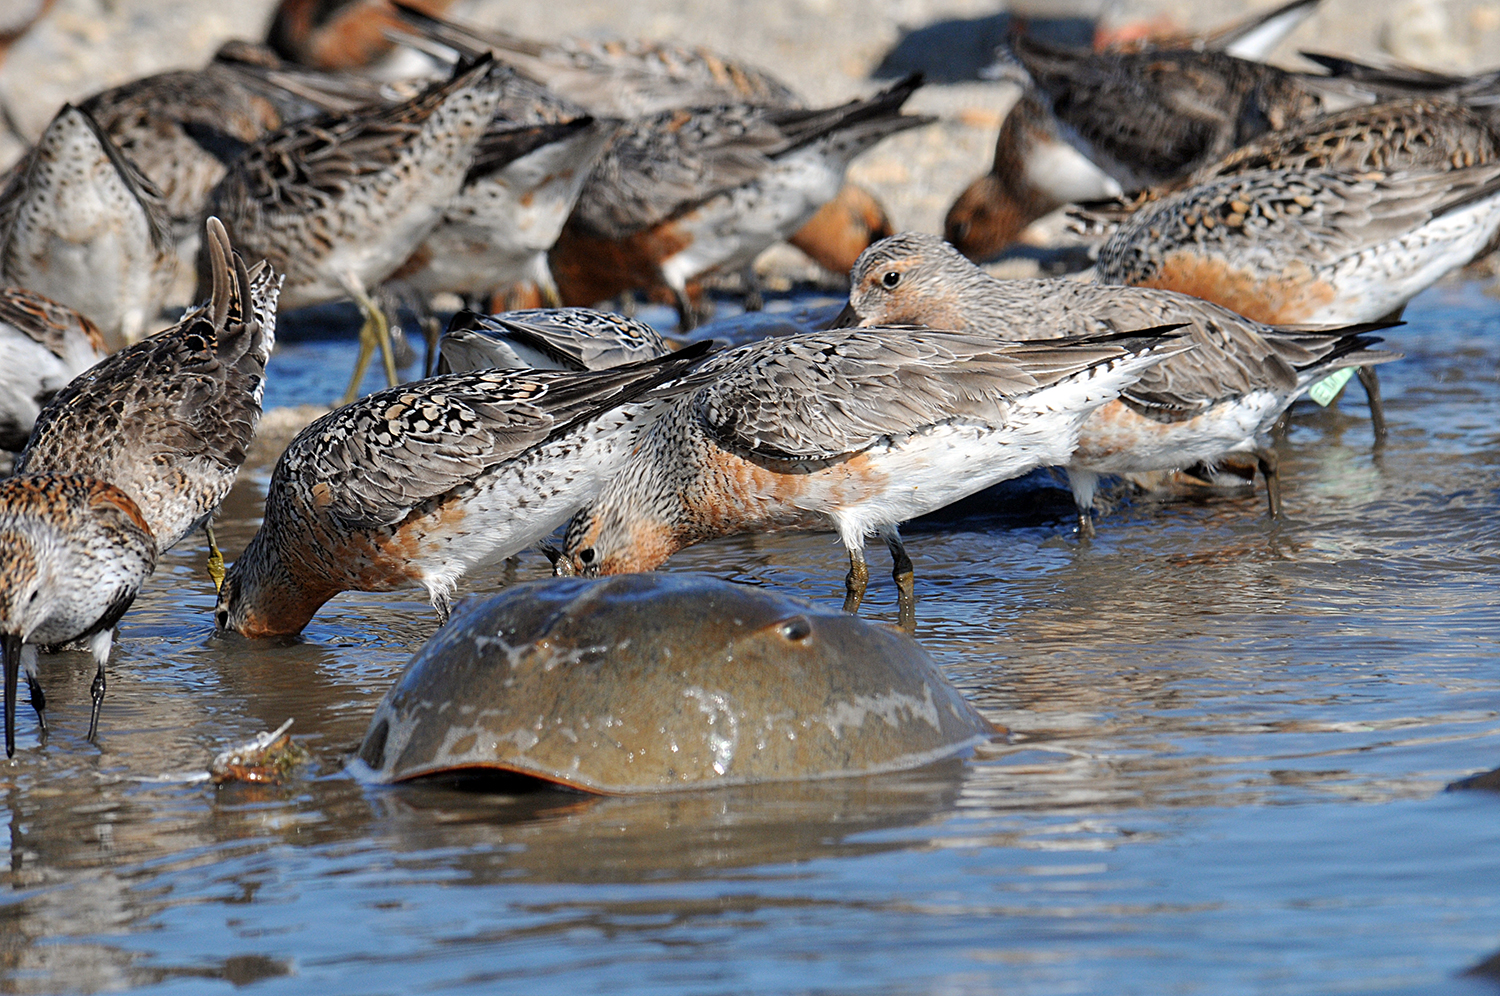 Red knots are migrating shorebirds that feast on horseshoe crab eggs. Photo by Gregory Breese/USFWS